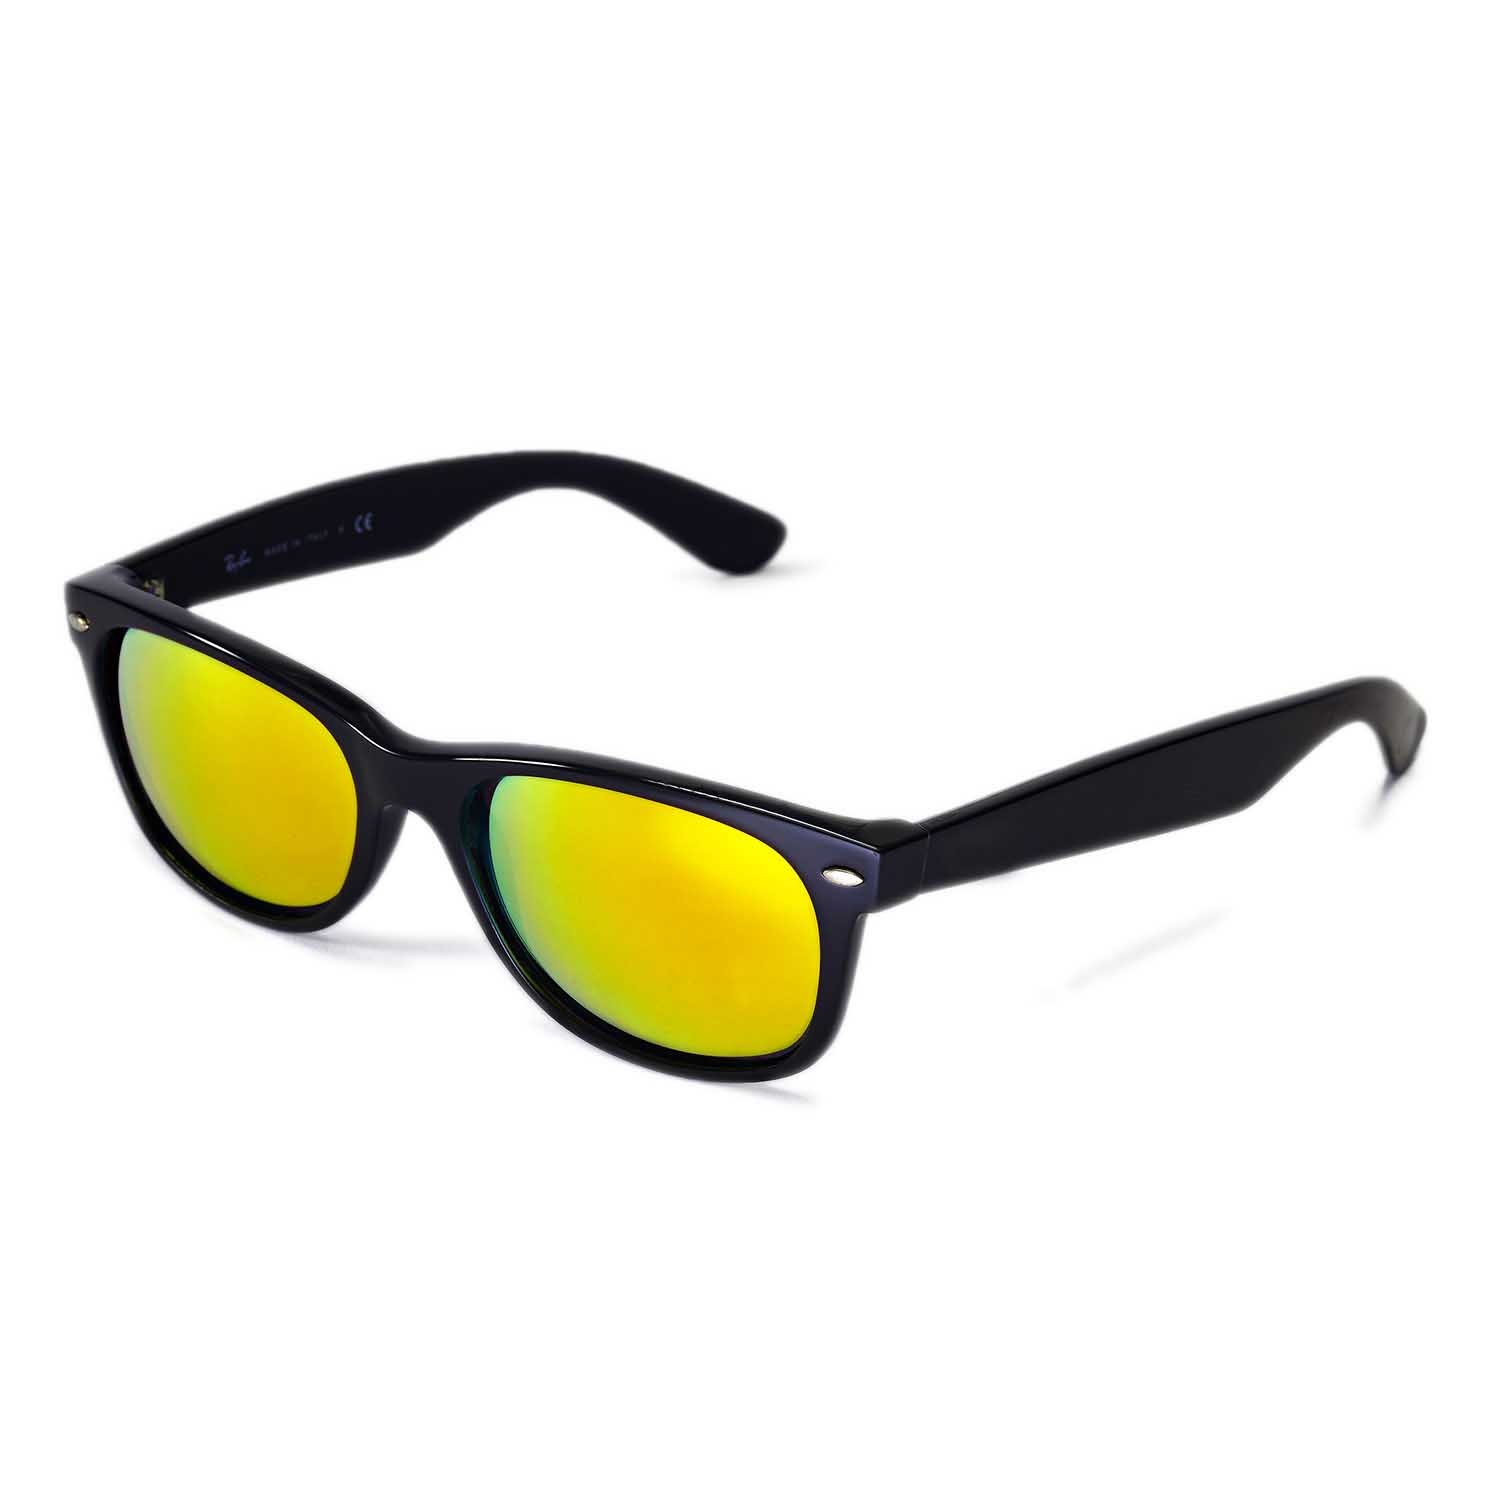 39edf2fdf2 Amazon.com  Walleva Replacement Lenses for Ray-Ban Wayfarer 2132 55mm-9  Options Available (24K Gold Mirror Coated - Polarized)  Clothing